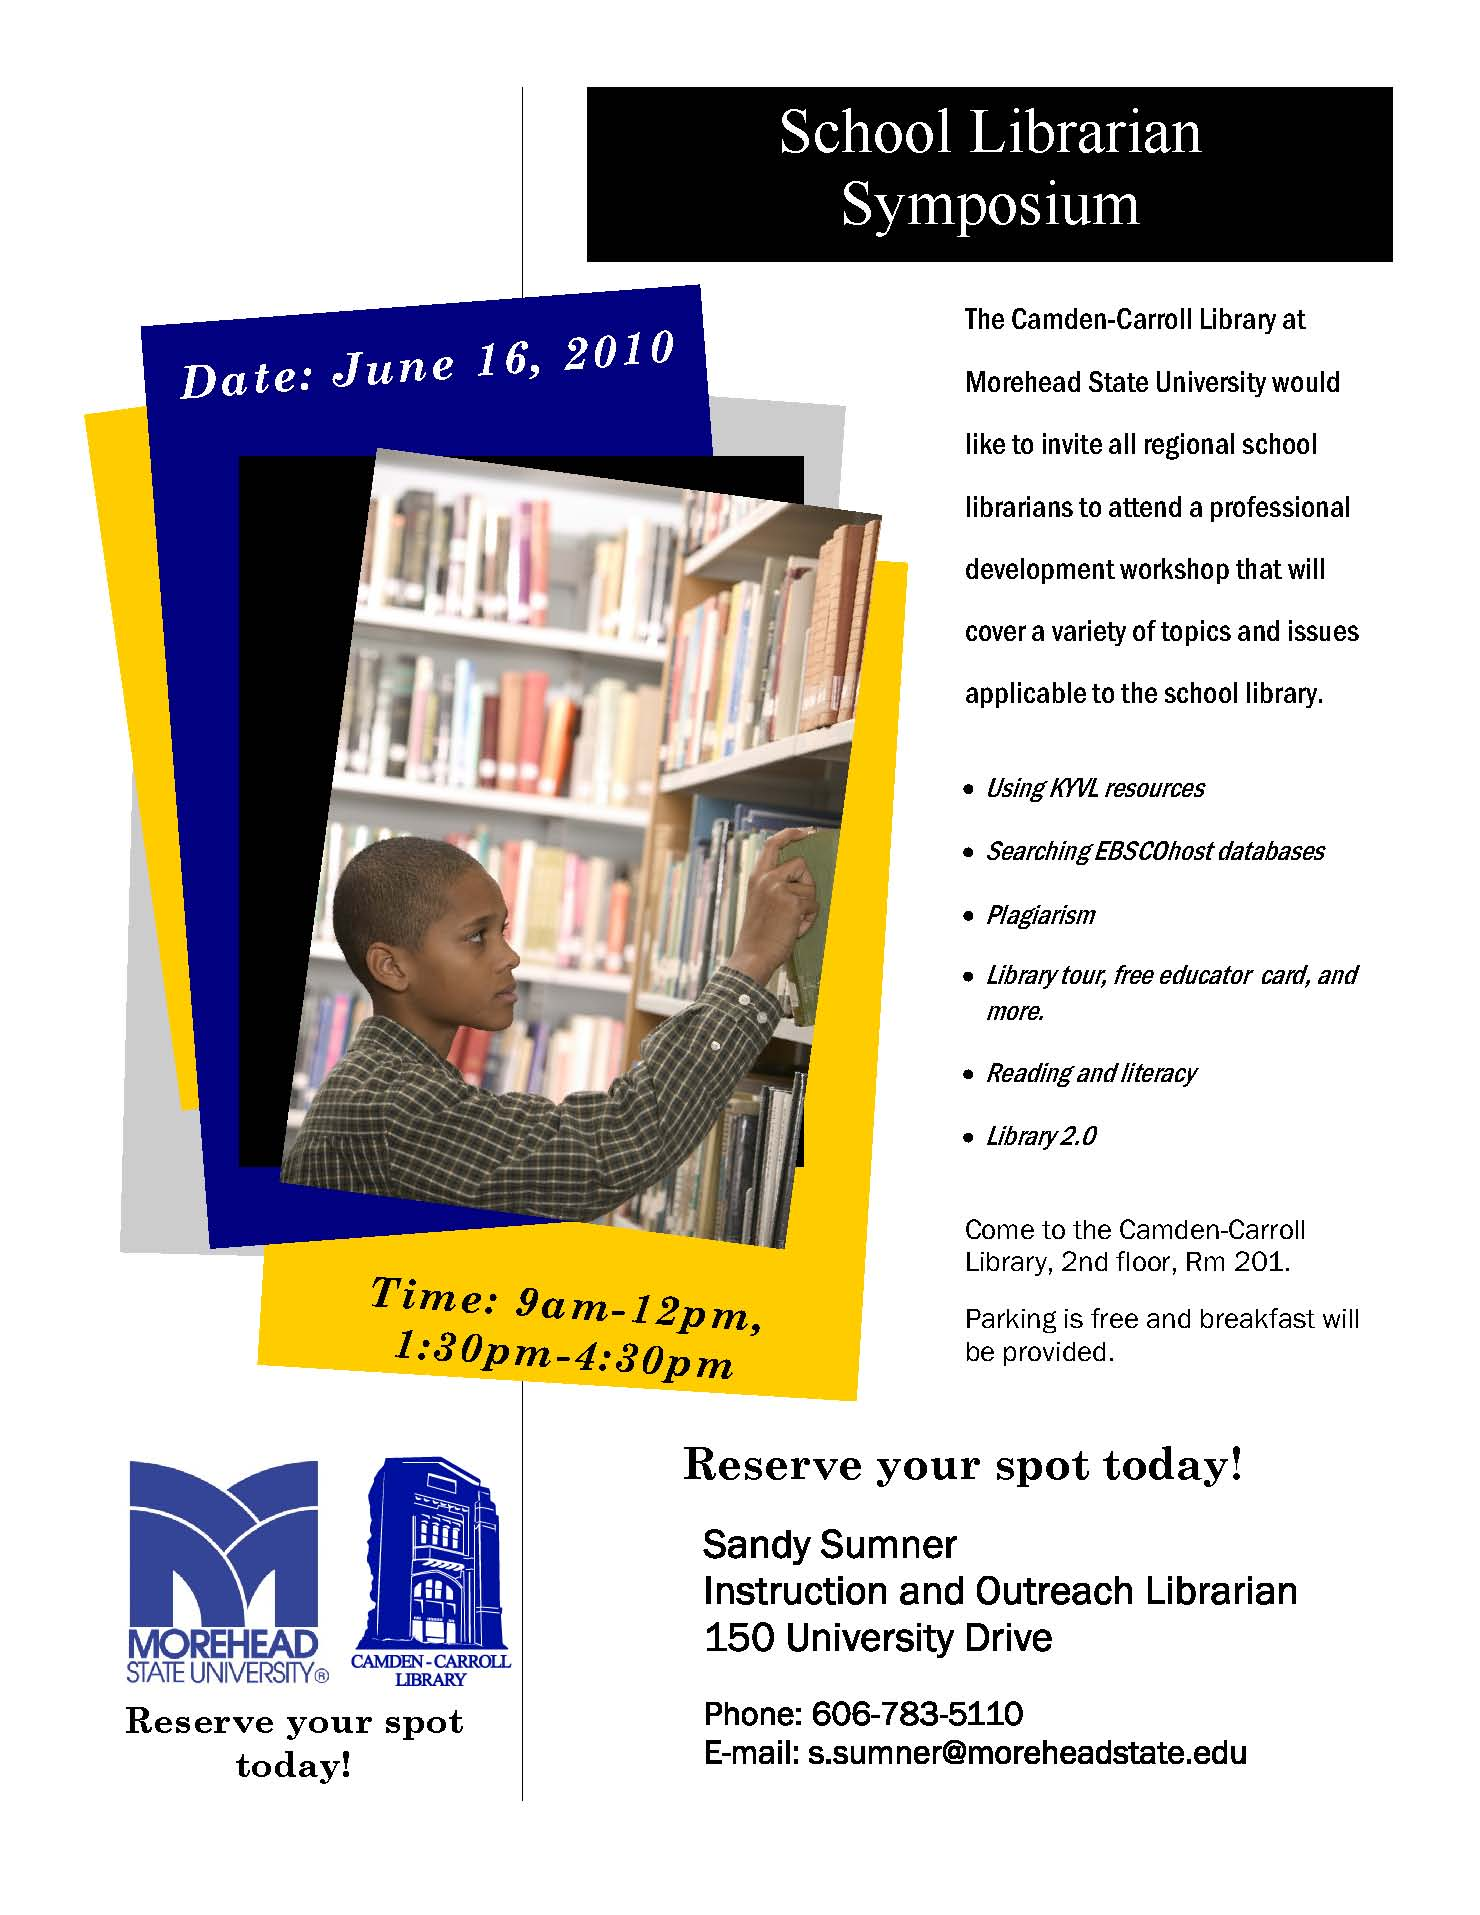 School Librarian Symposium